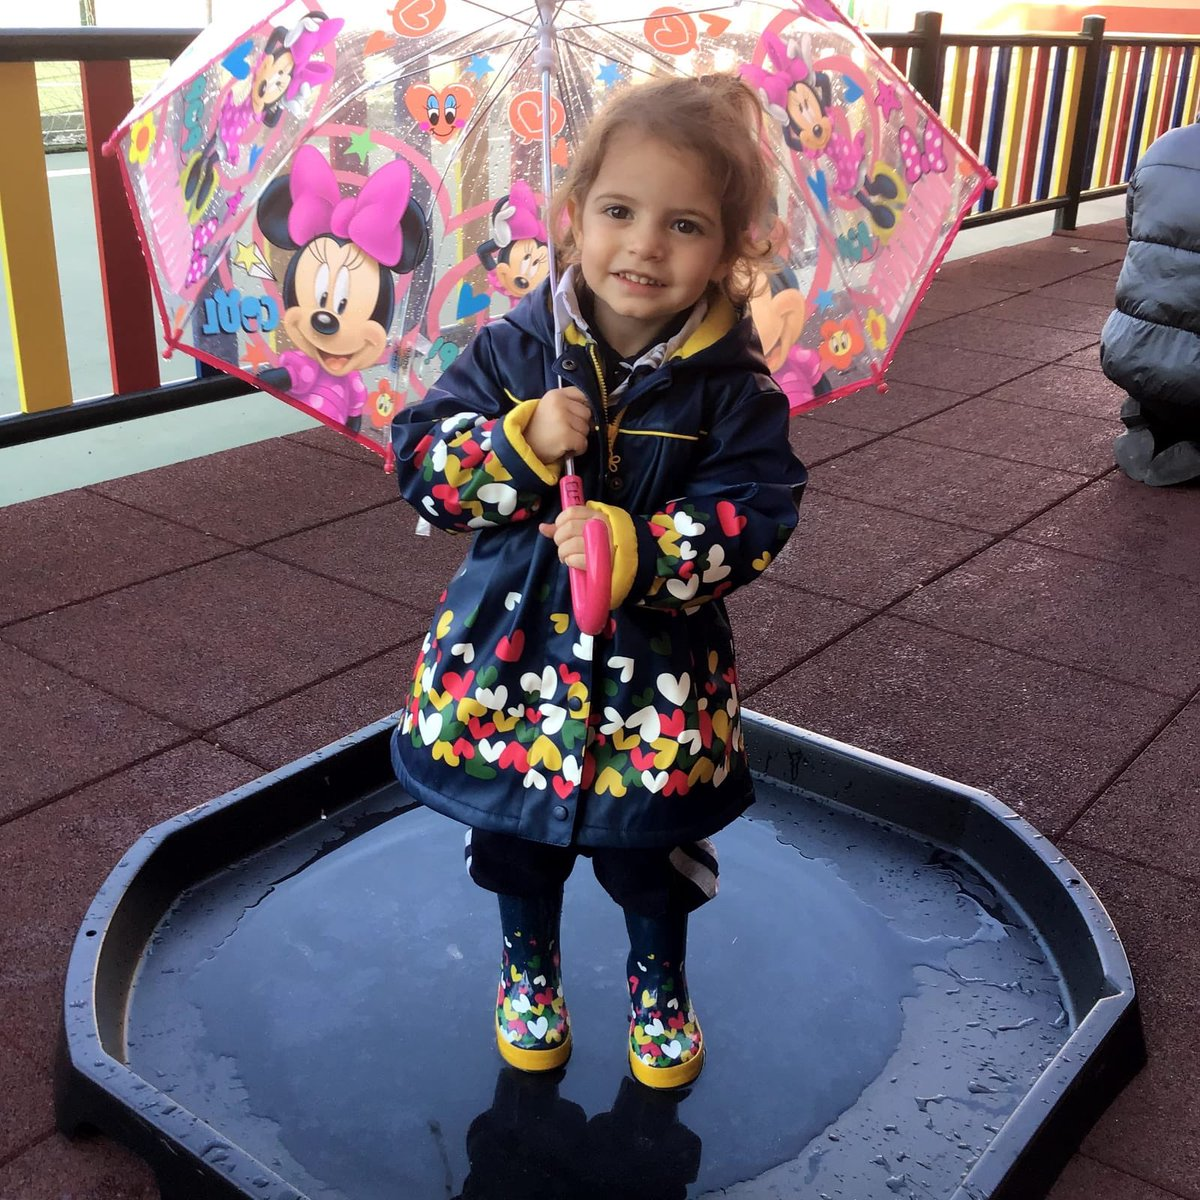 So what better way but to have 'hands on' experience but to get wet. All the children were their rain coats & wellington boots and brought in their umbrella to try and stay dry.   Learning is fun in N2 Bugs! #rainraingoaway#amazinglearning #openingminds #learningbydoing #ieycpic.twitter.com/jQsSmz9tho